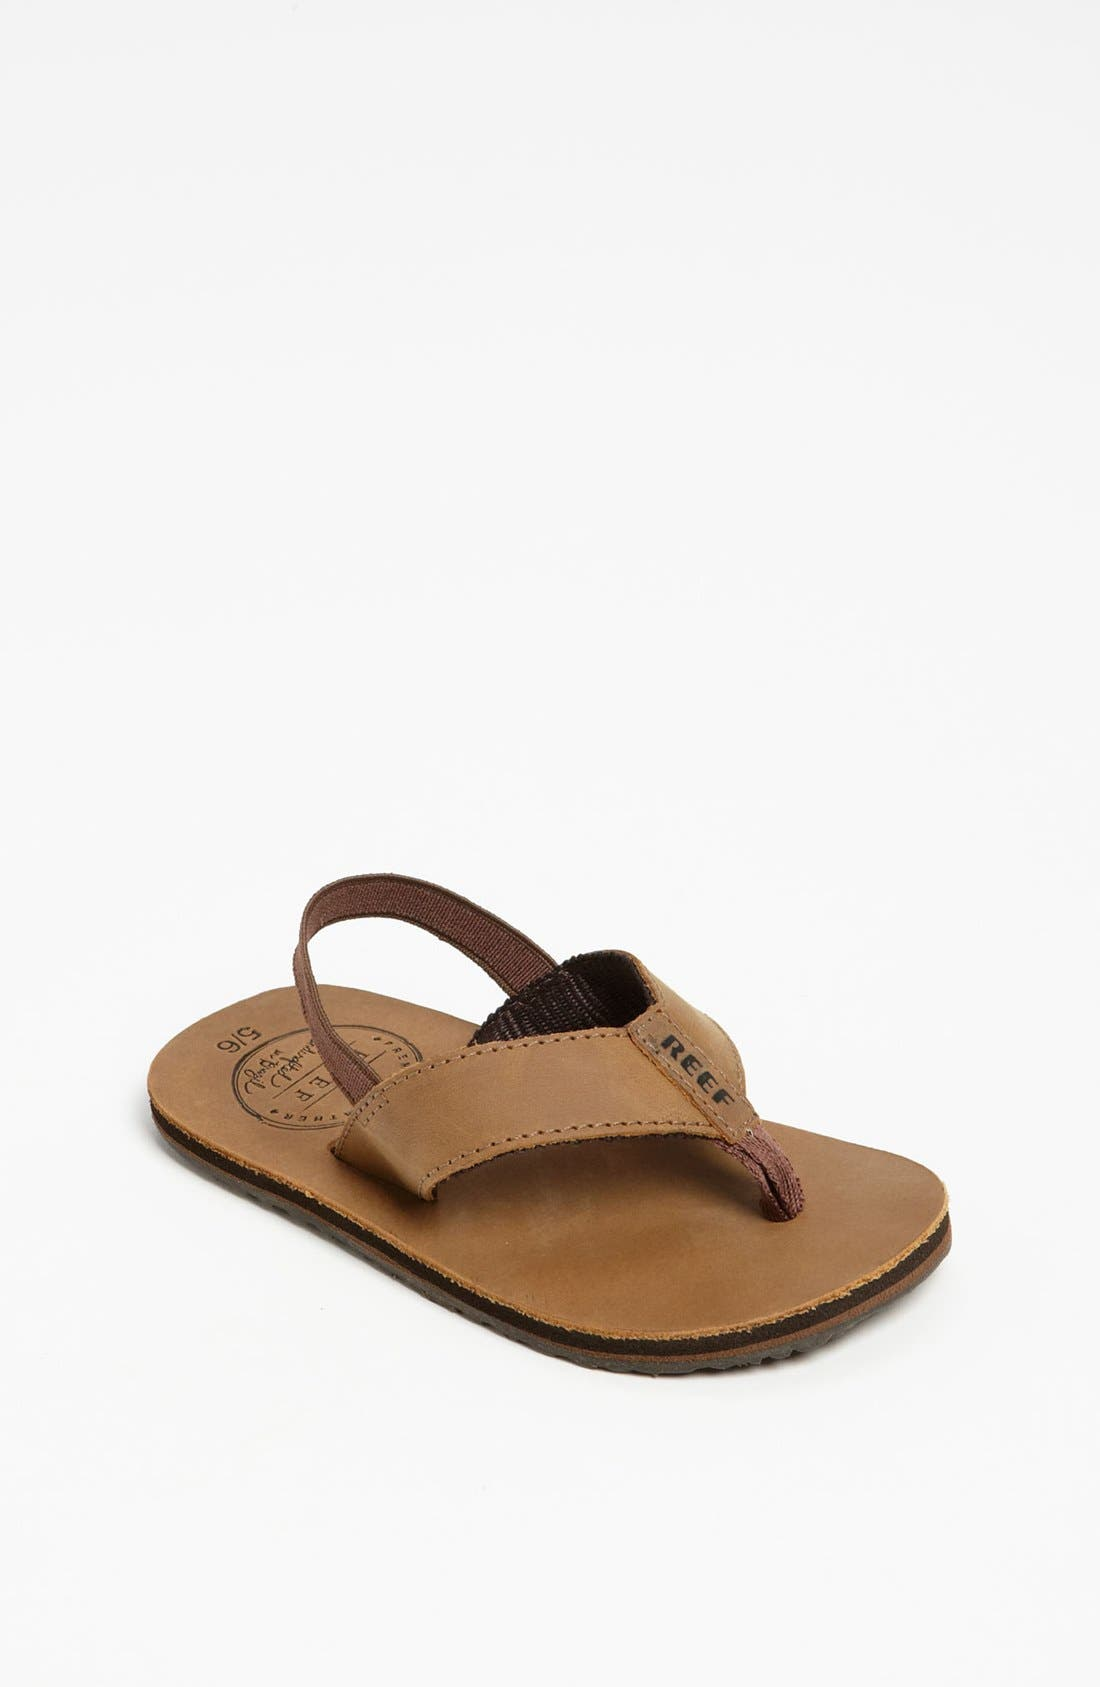 Reef 'Grom' Leather Flip-Flop (Baby, Walker, Toddler, Little Kid & Big Kid)